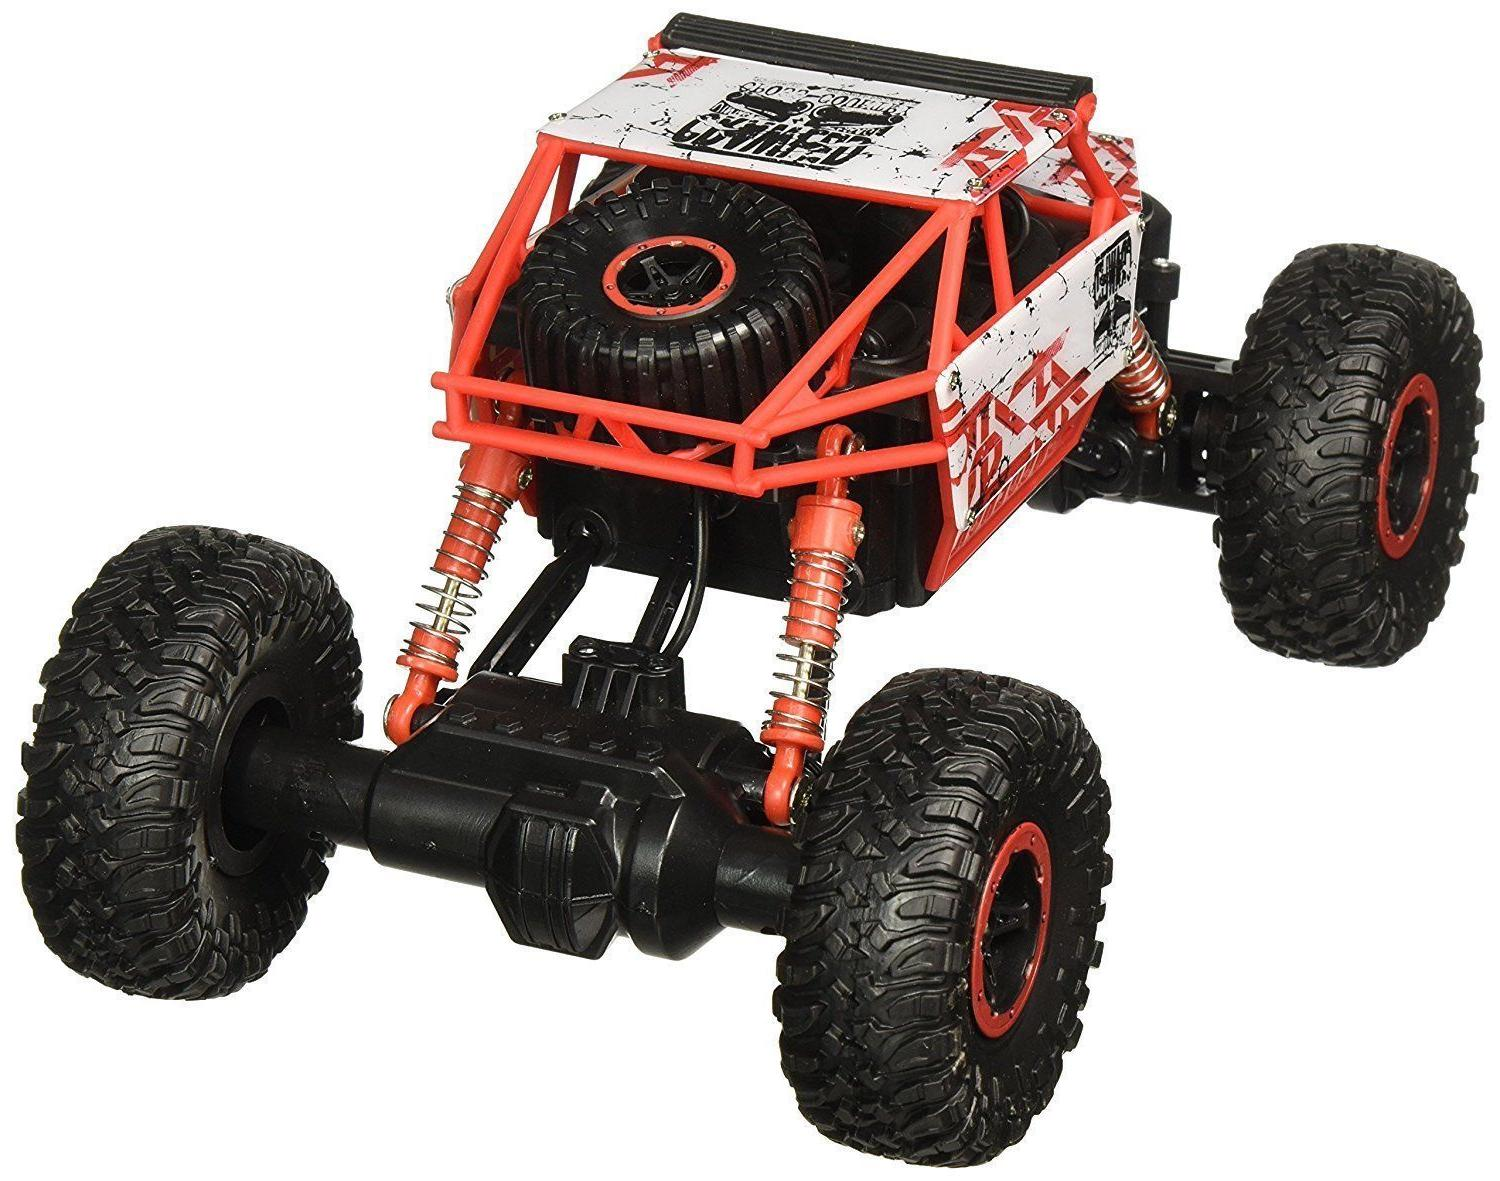 NWOB Click N Rock Crawler RC Car Red Vehicle